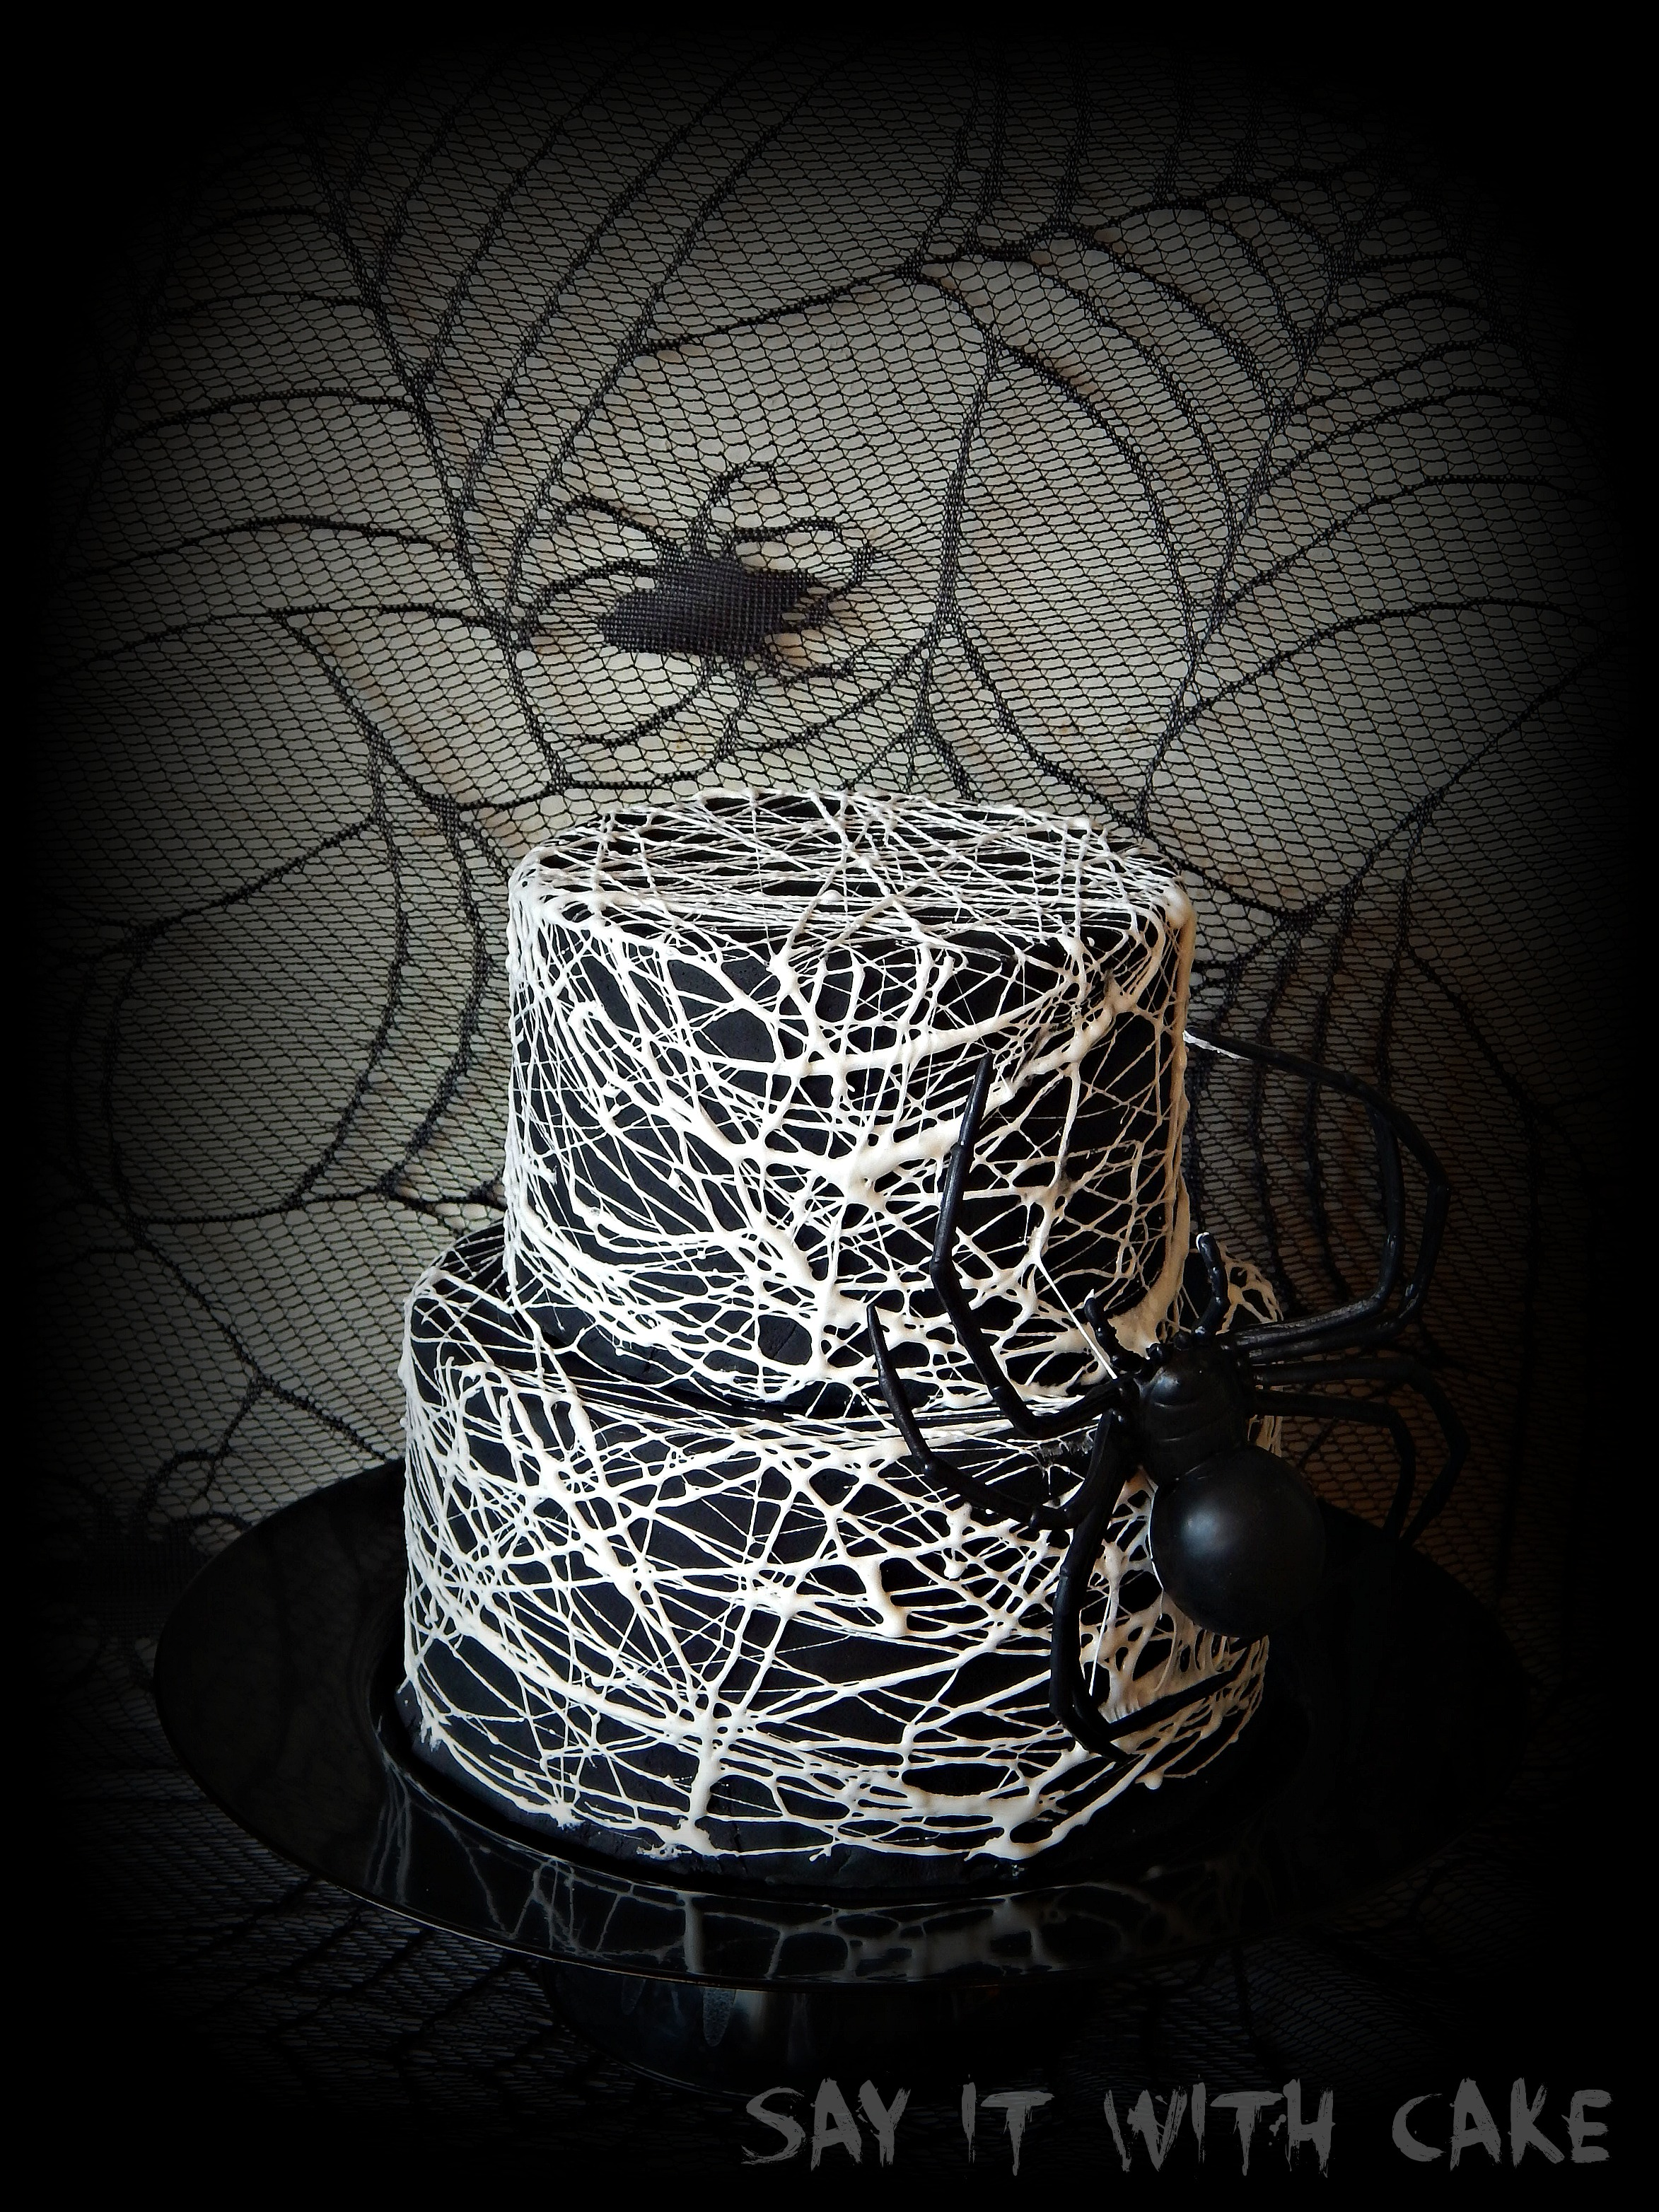 I just love the way this spider web looks, so creepy like a giant spider is  spinning its web around this cake lol!